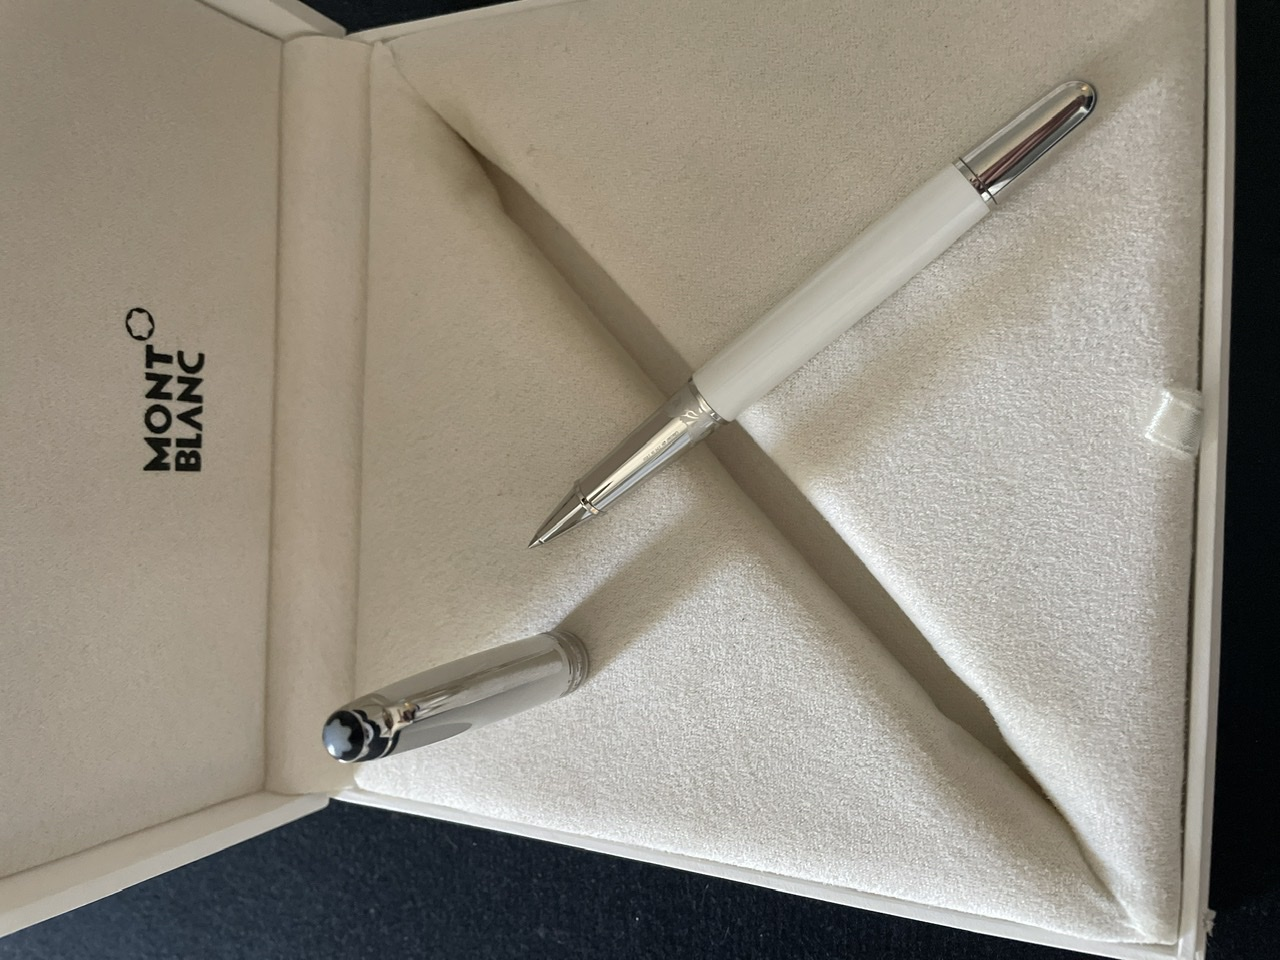 Pens and Pencils: : Mont Blanc: Tribute Rollerball